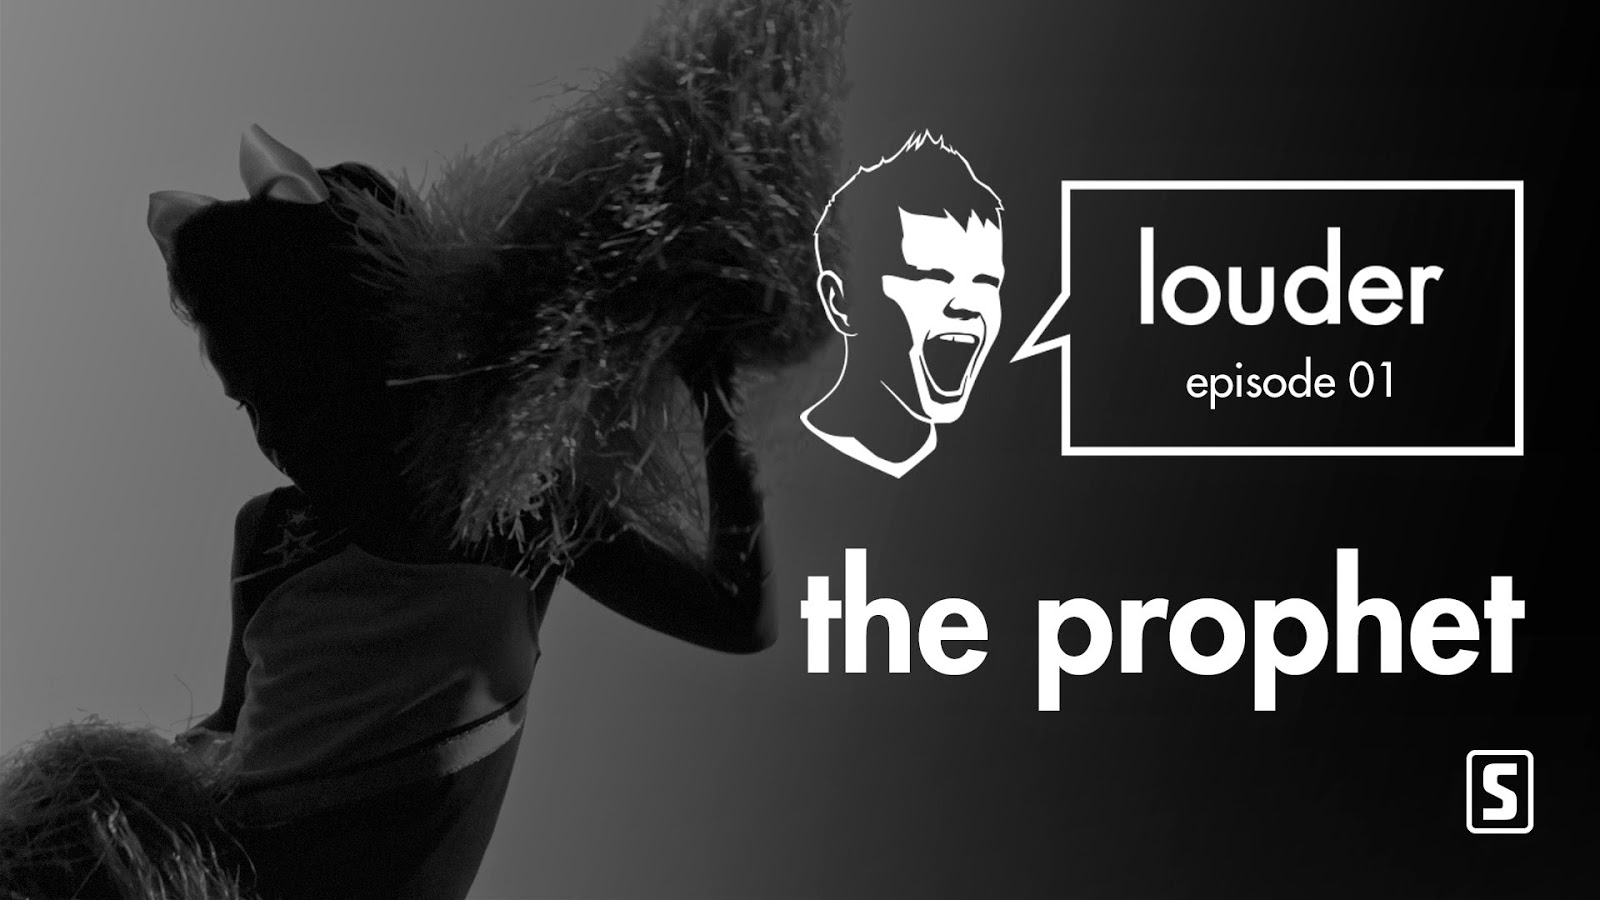 LOUDER - Episode 01 by The Prophet Thumbnail